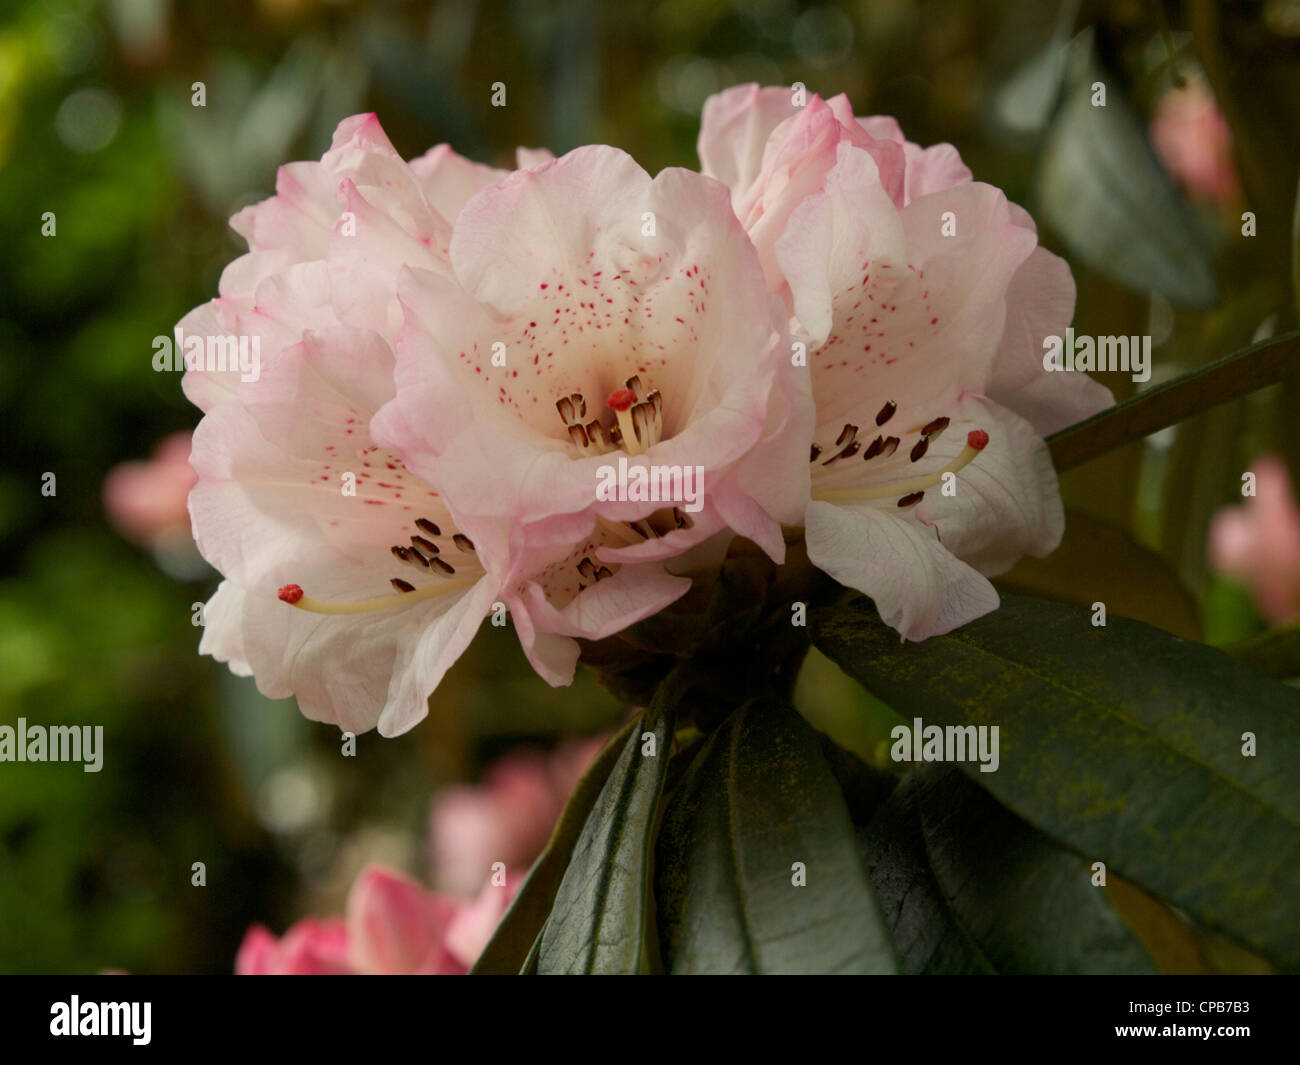 Rhododendron arboreum x campanulatum, one group of flowers in bloom - Stock Image